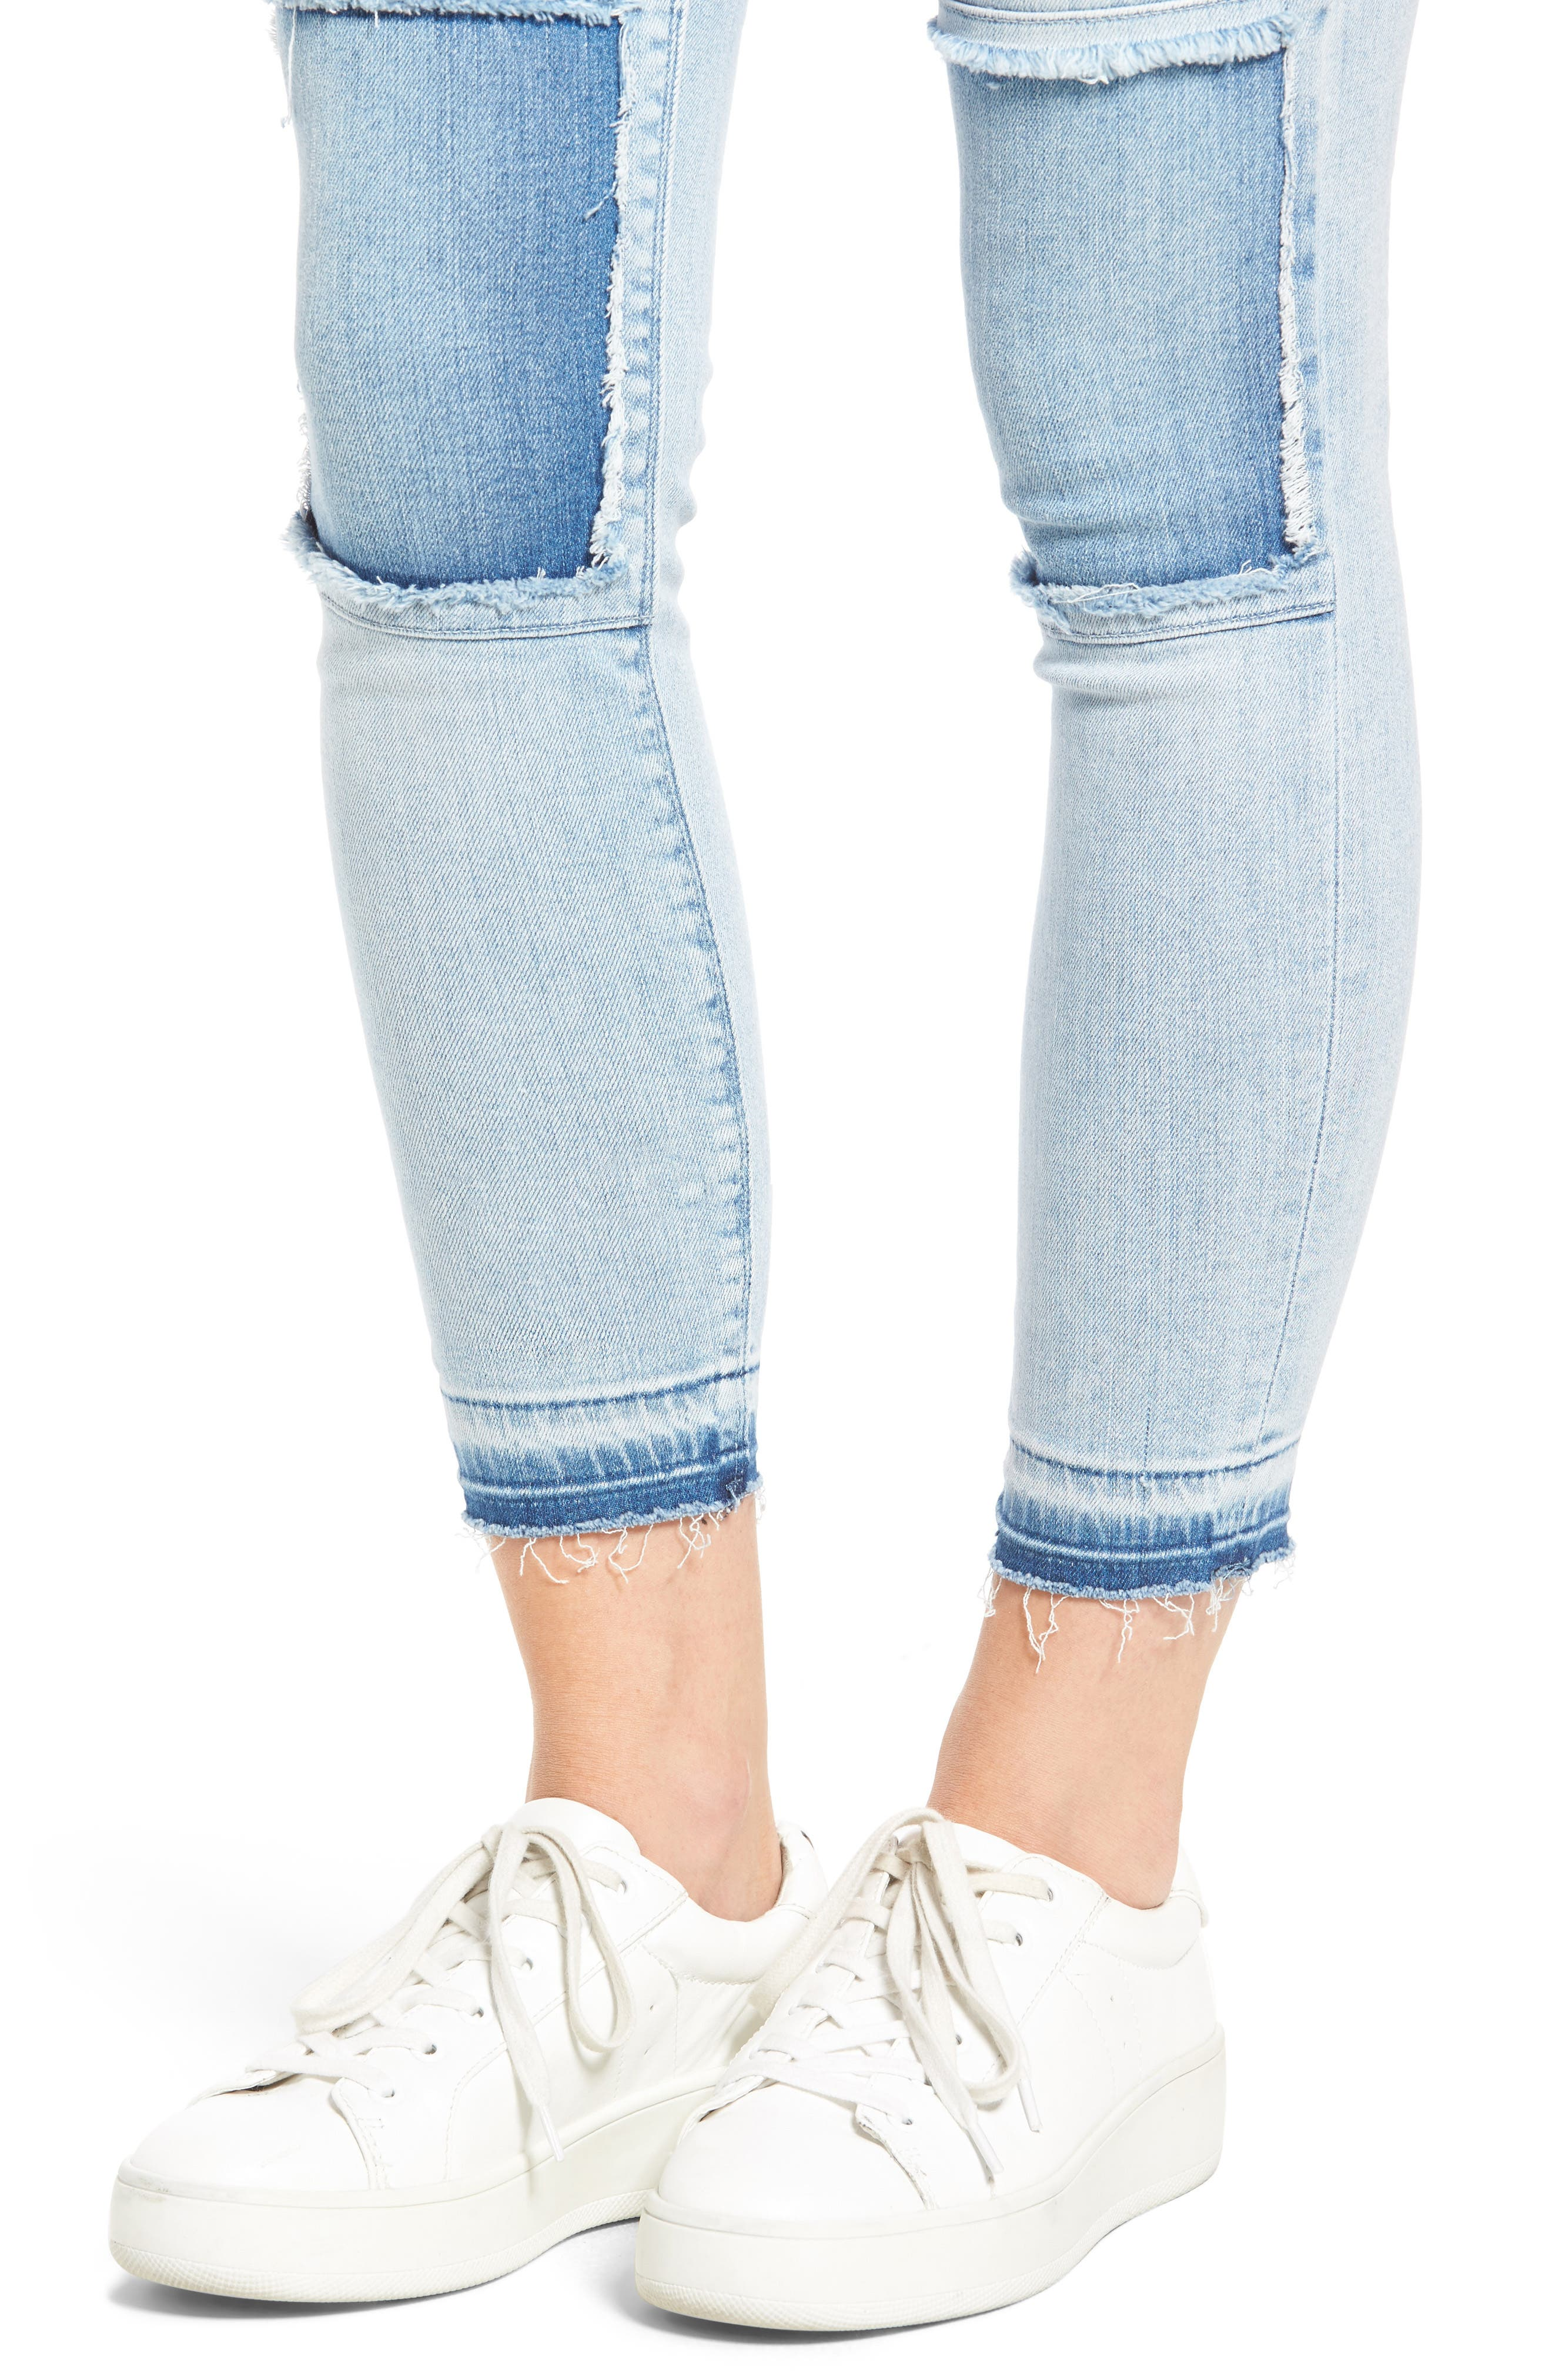 Szzi Mid Rise Patched Skinny Jeans,                             Alternate thumbnail 4, color,                             455